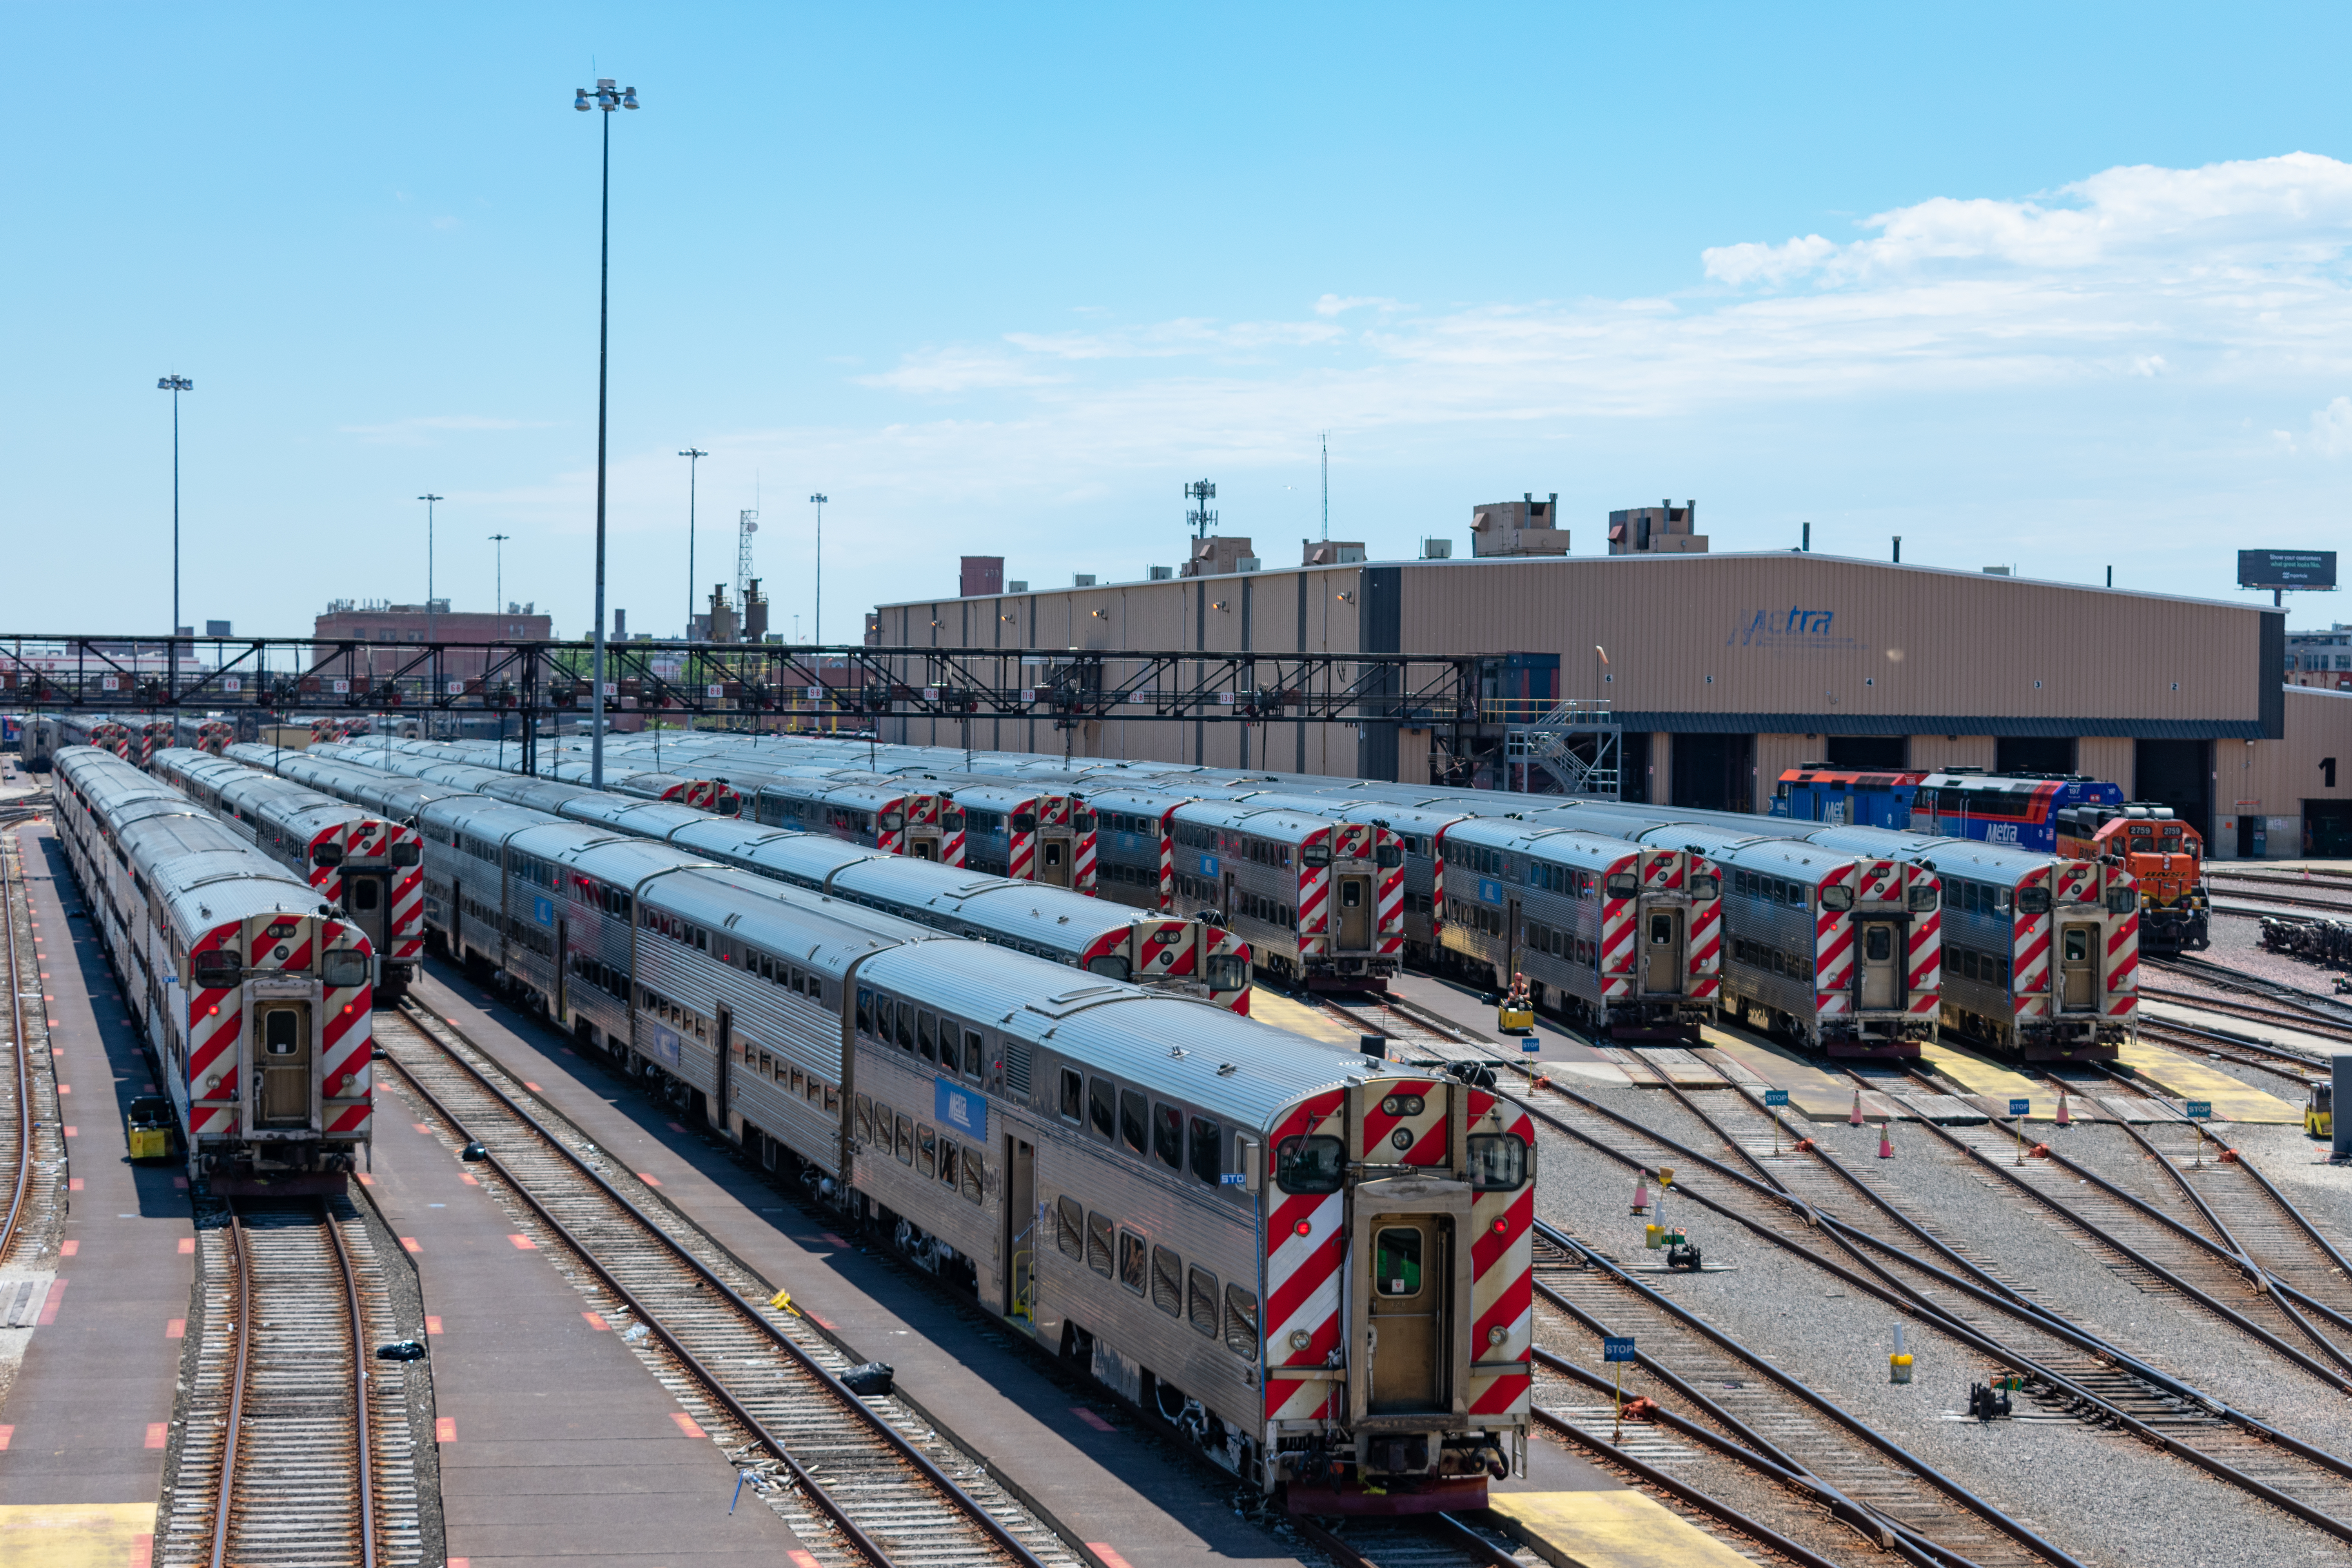 A rail yard with several silver Metra commuter trains. There are short service buildings in the distance.